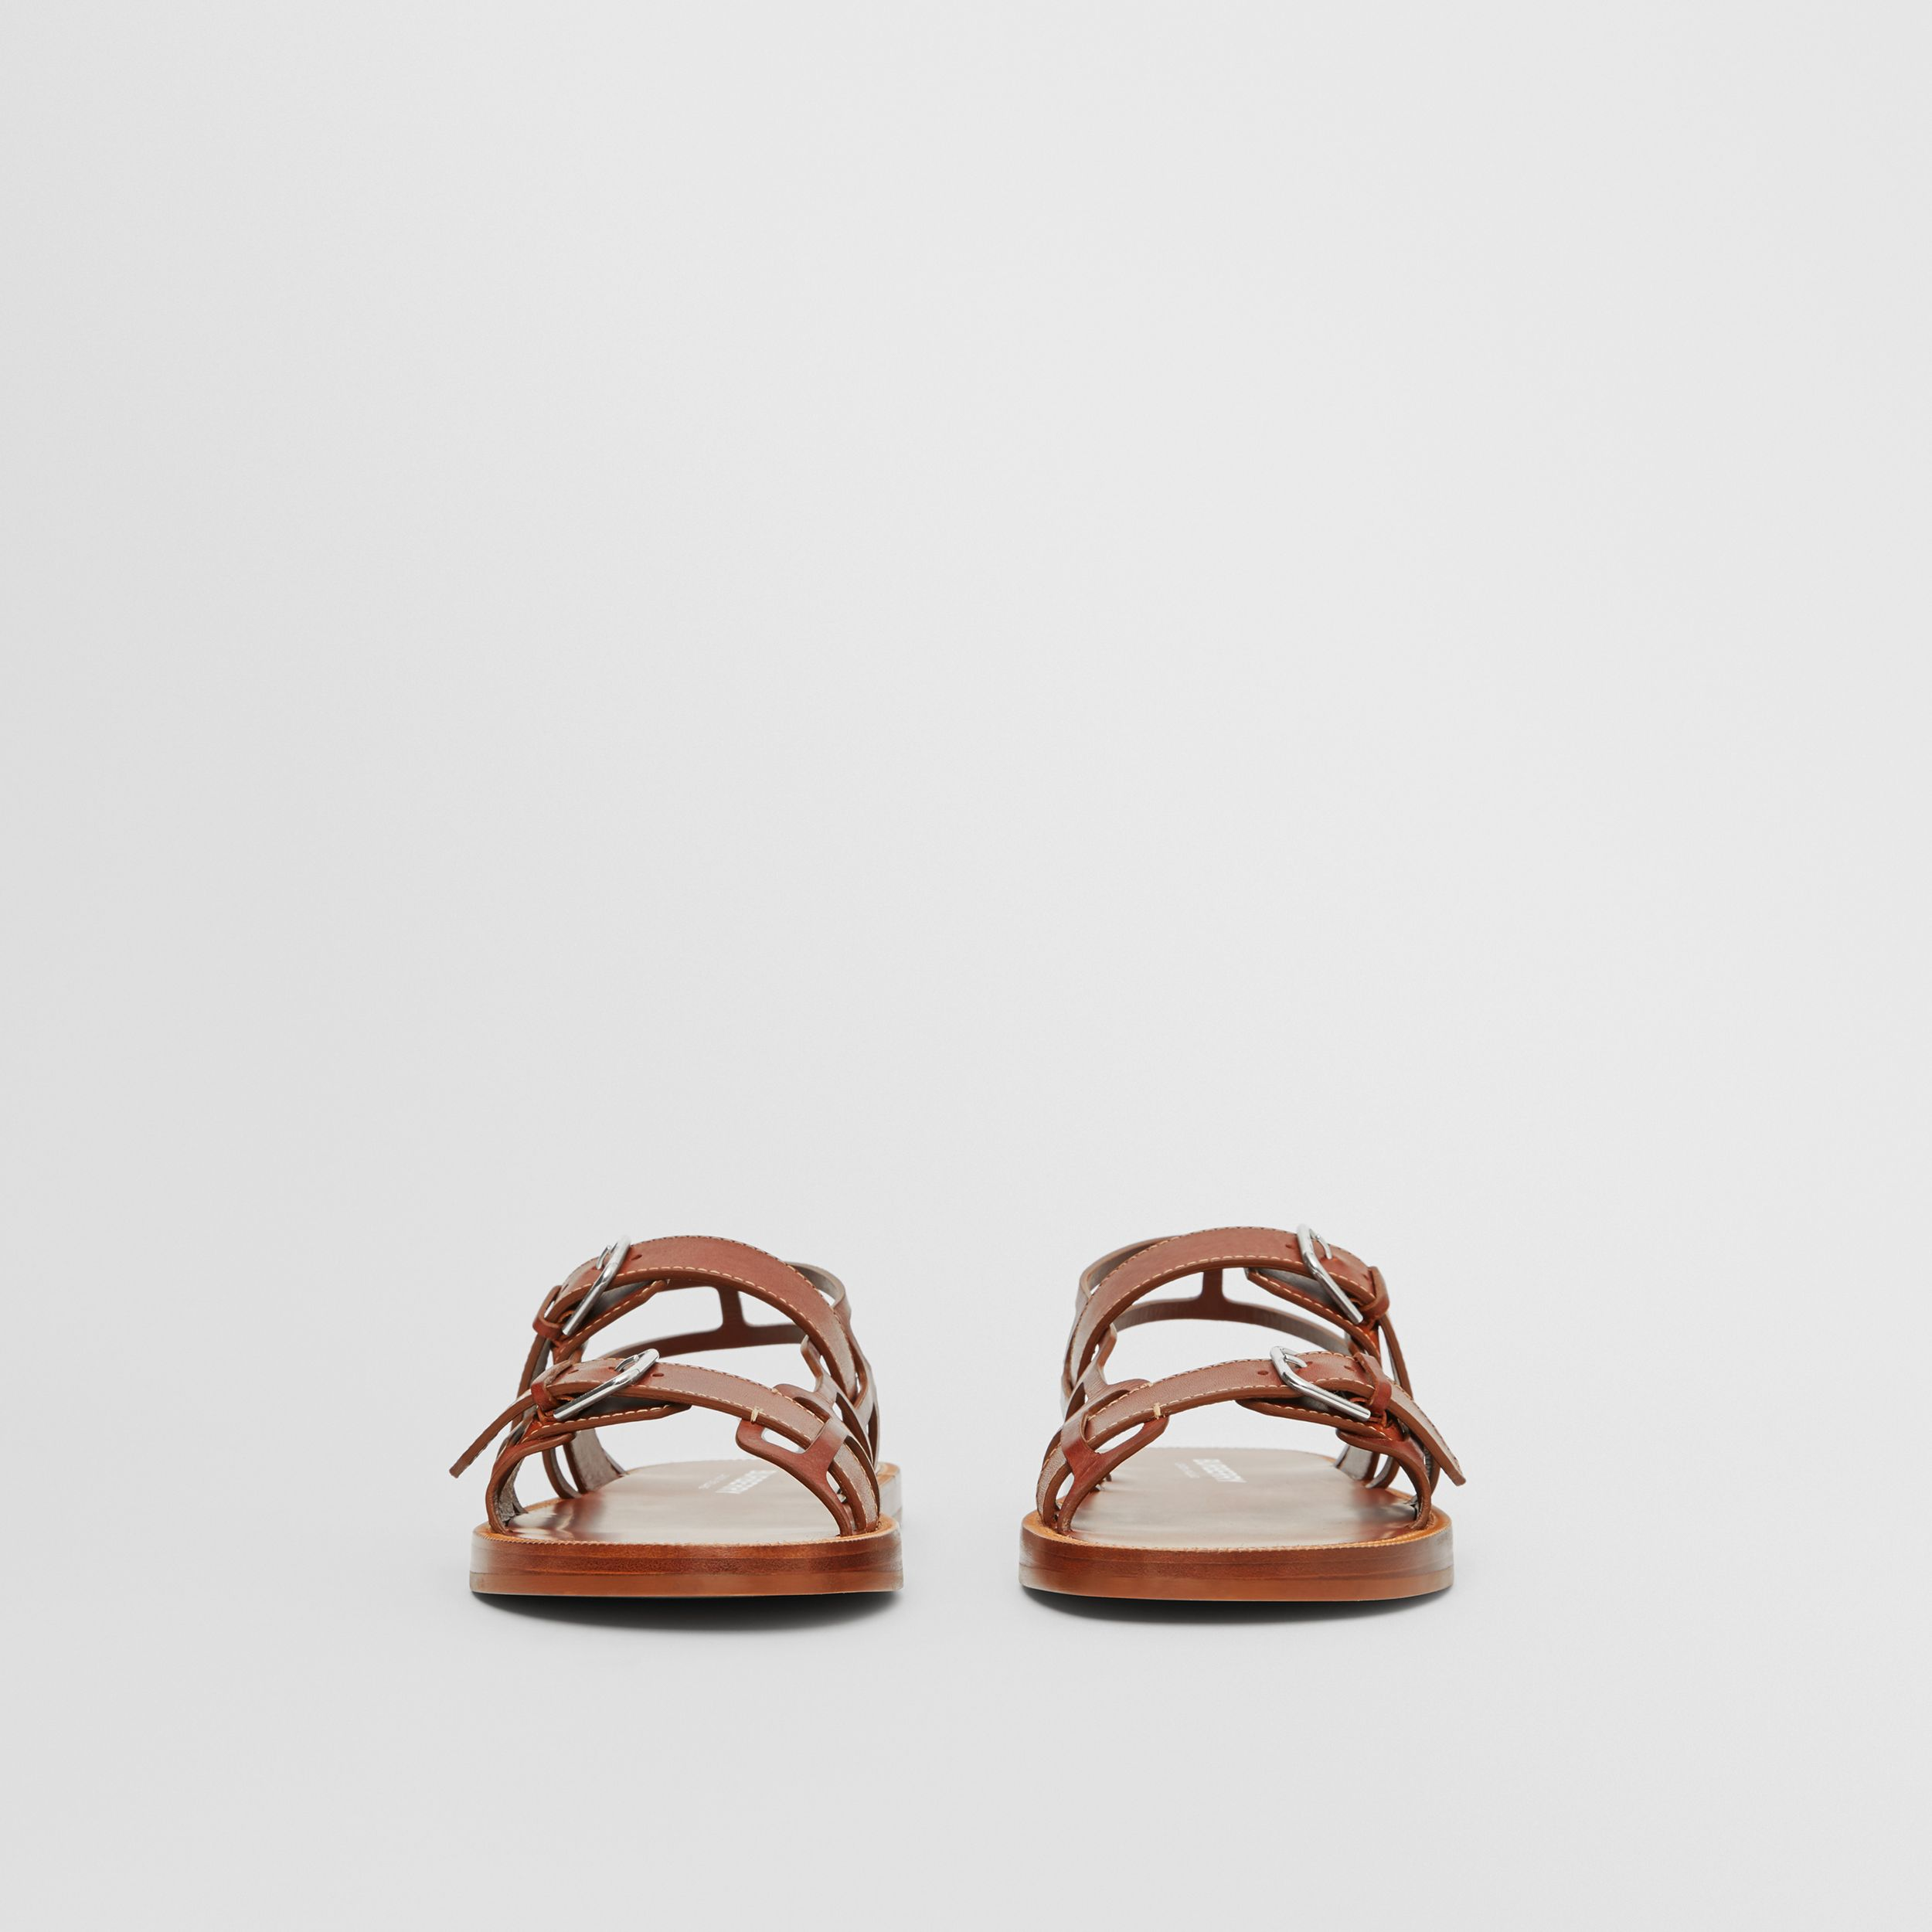 Leather Webb Sandals in Tan - Men | Burberry - 3